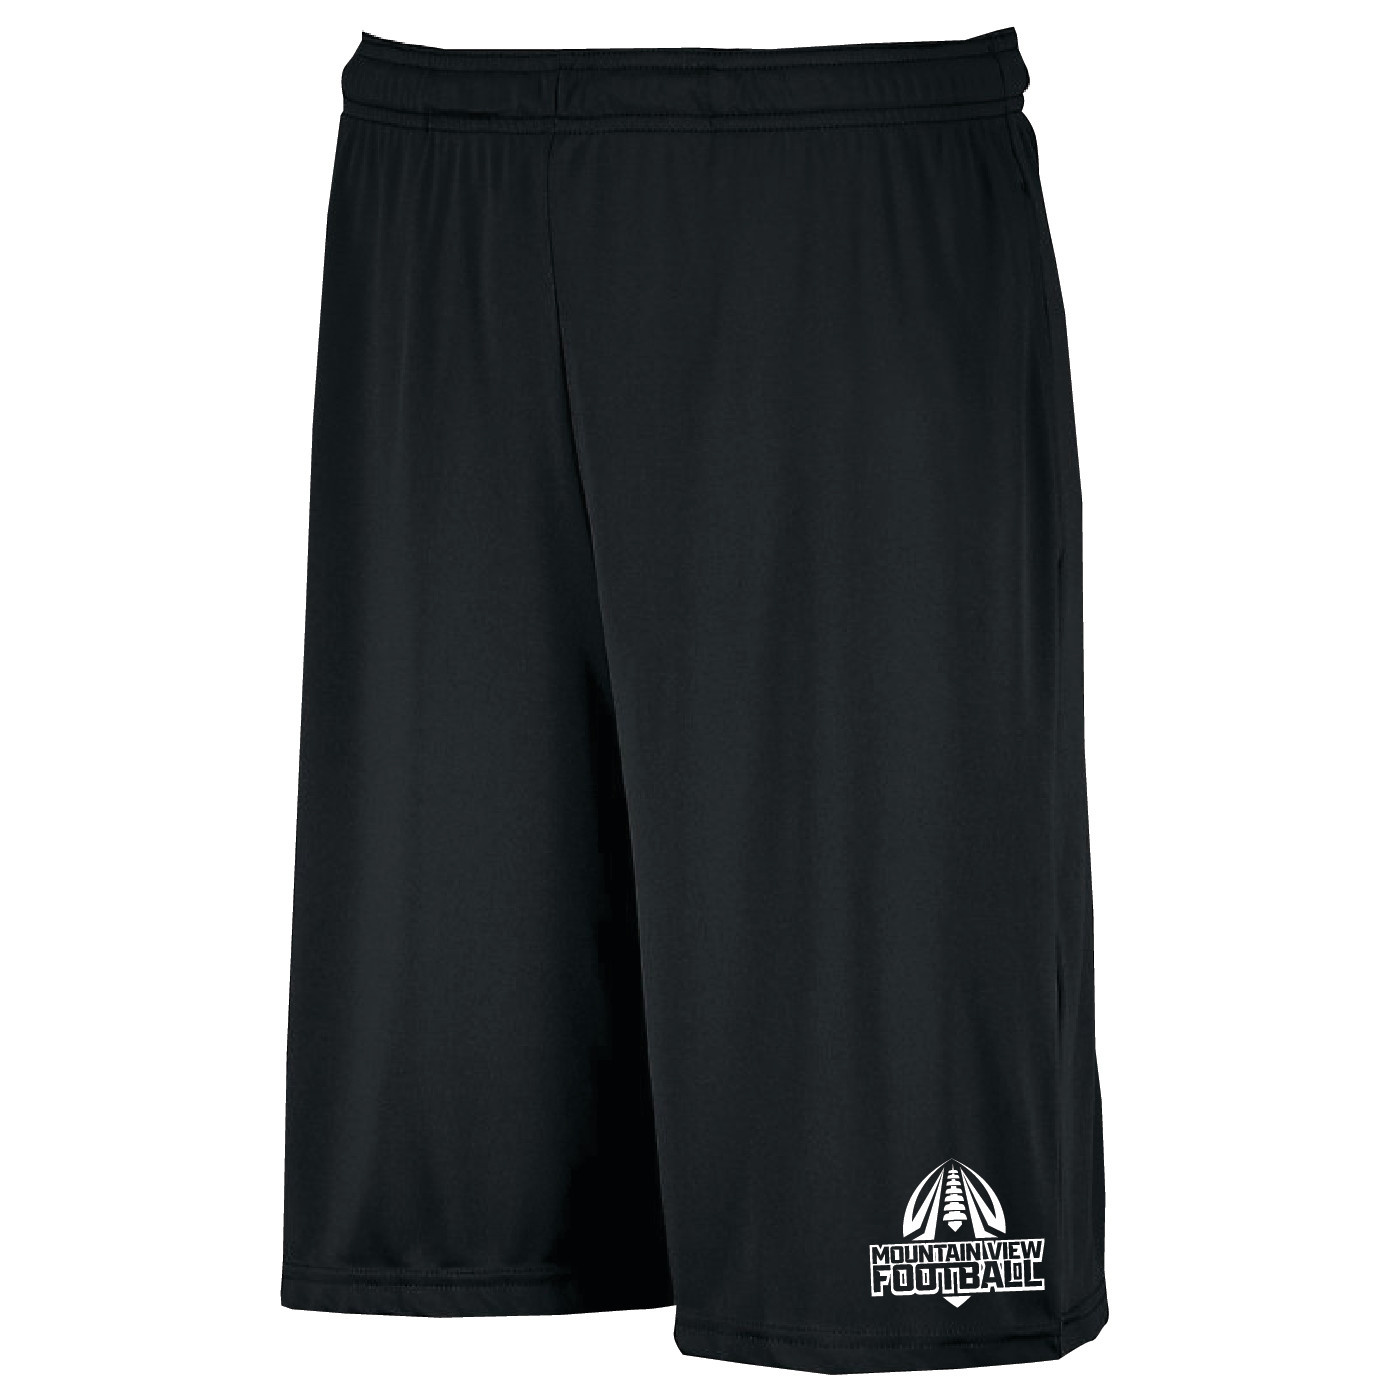 DRI-Power Essential Performance Short w/Pockets (Black)